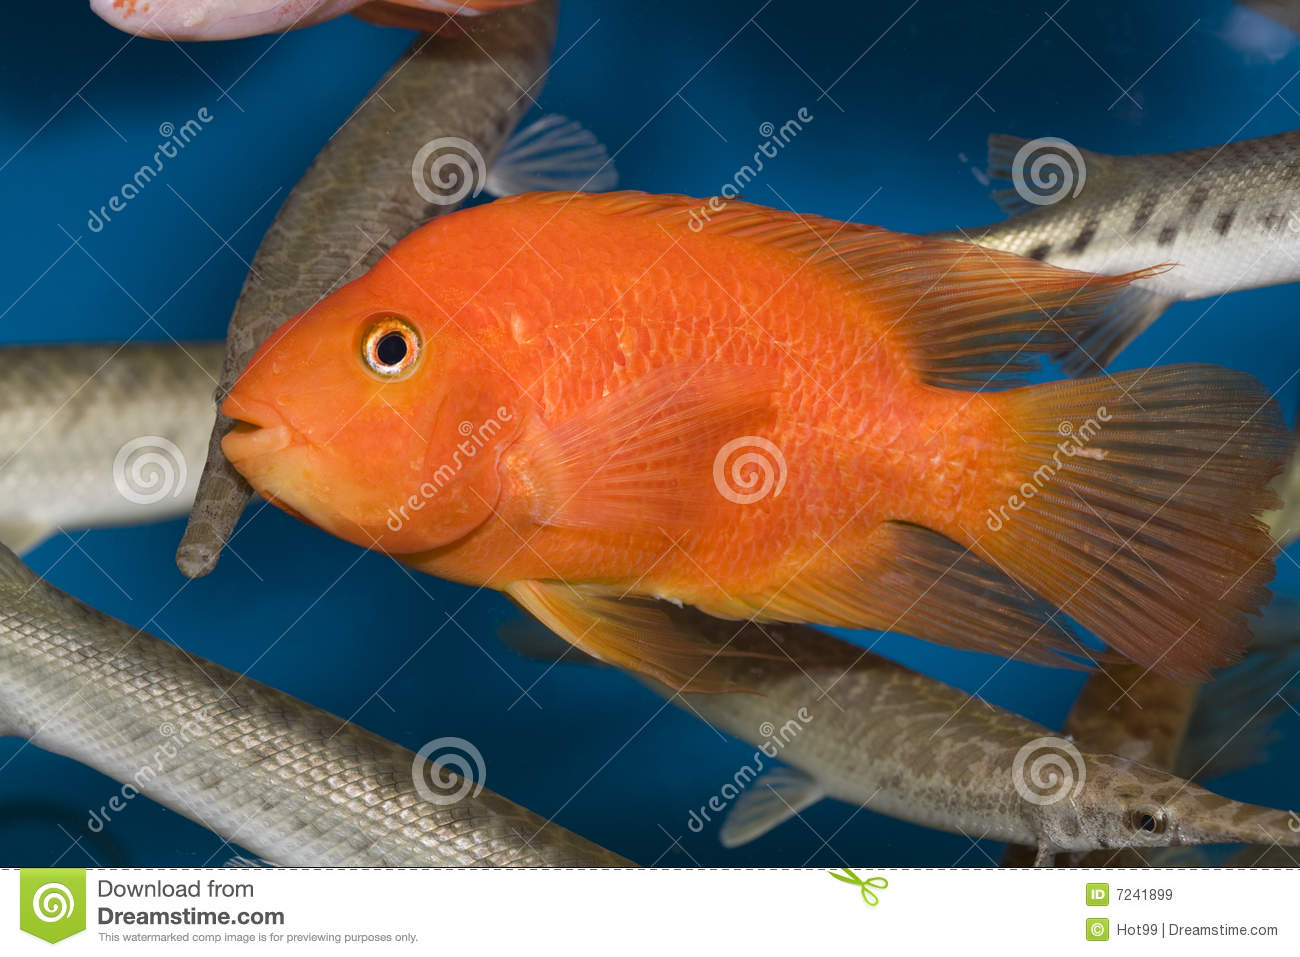 Red parrot fish royalty free stock images image 7241899 for Red parrot fish